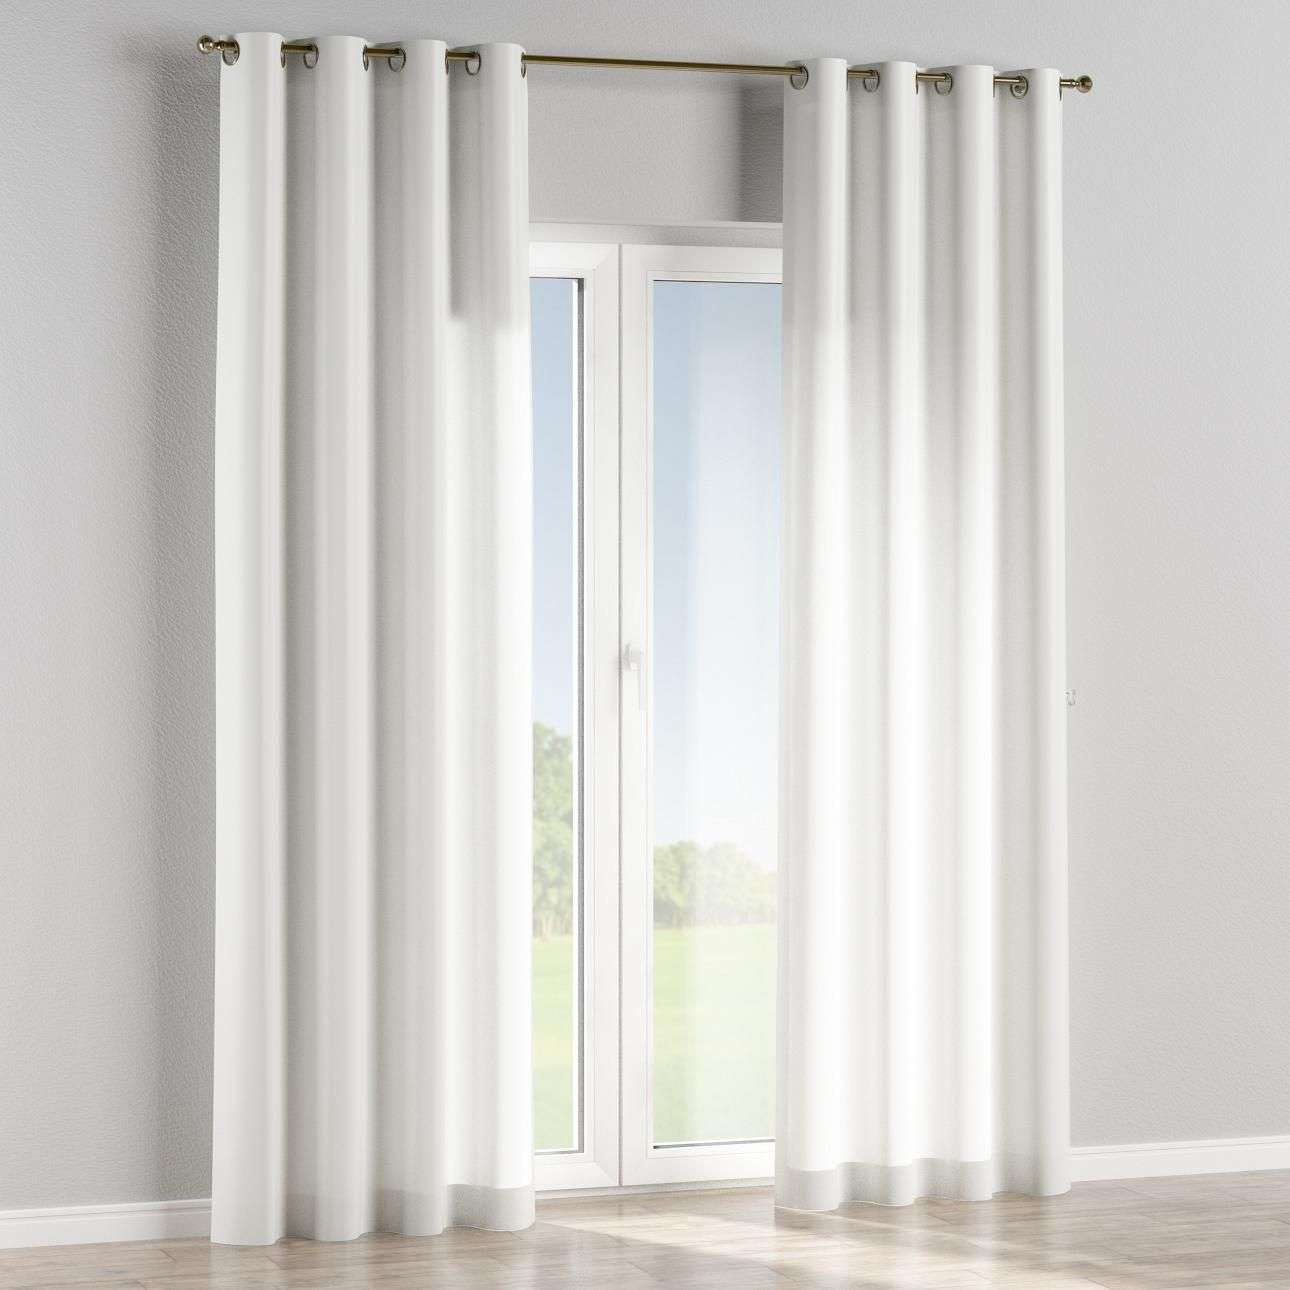 Eyelet curtains in collection Milano, fabric: 150-23